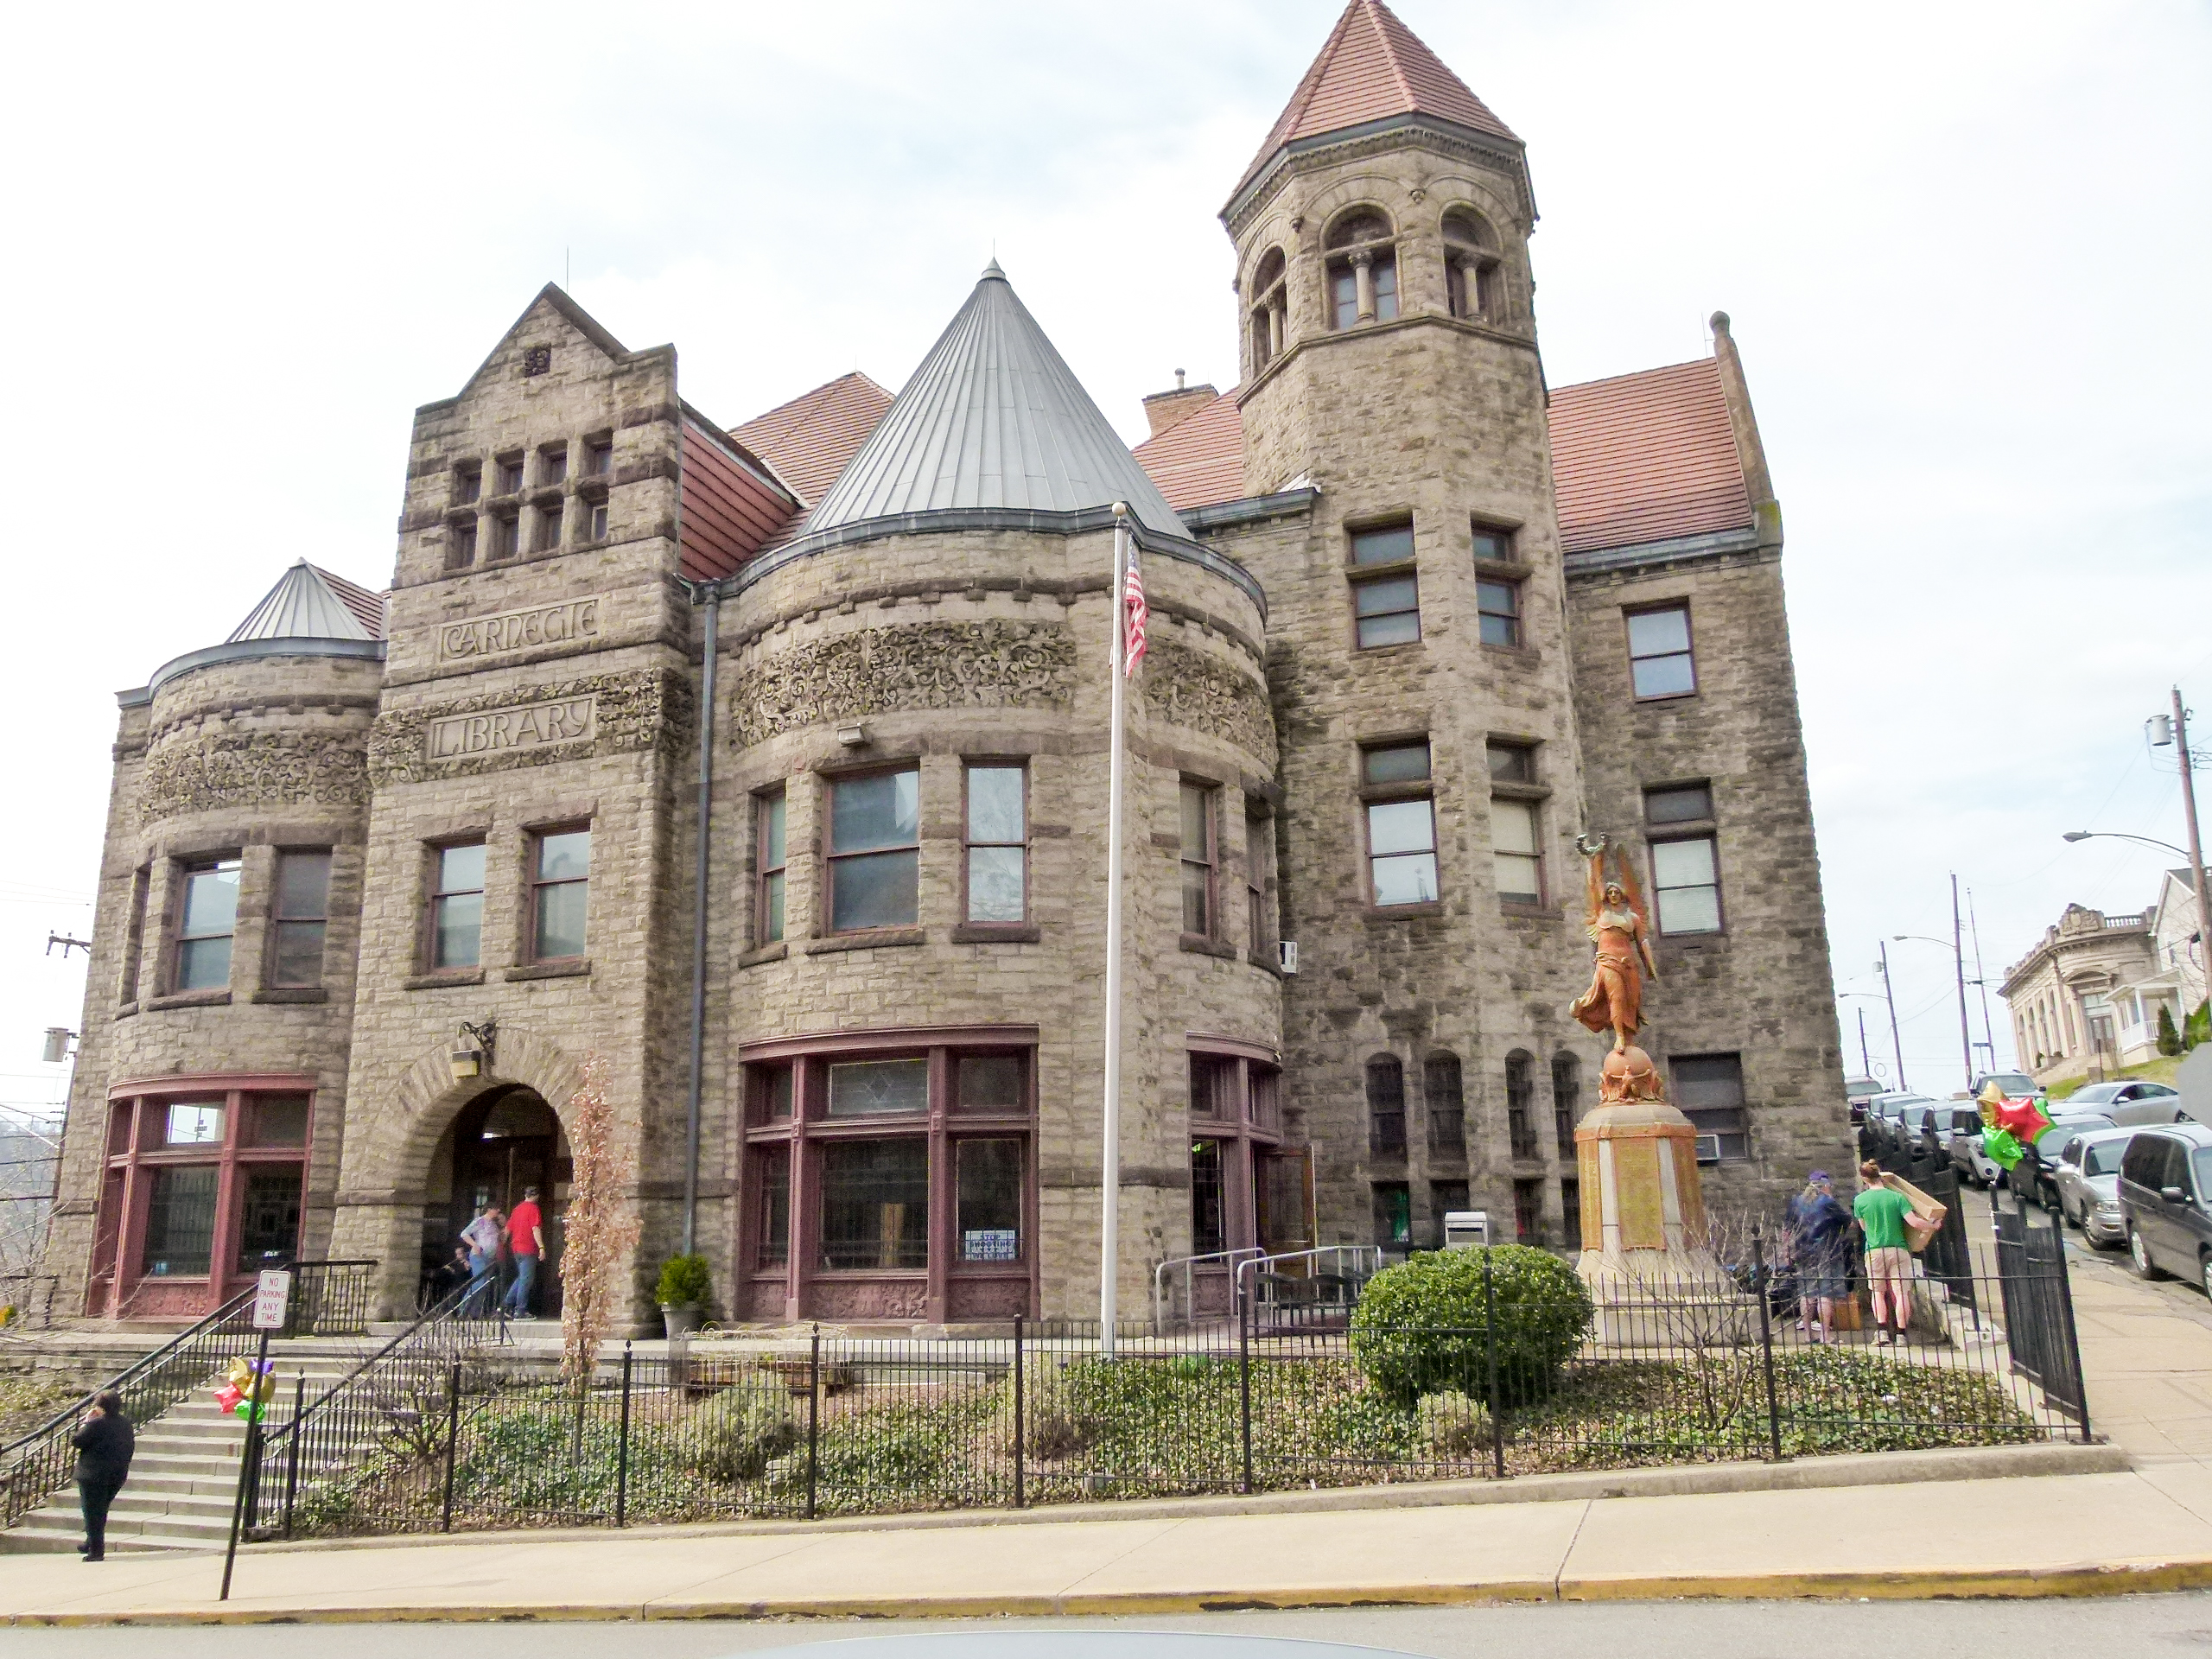 The Braddock Carnegie Library held its 10th Annual Chili Cook-off fundraiser in its beautiful and historic building.